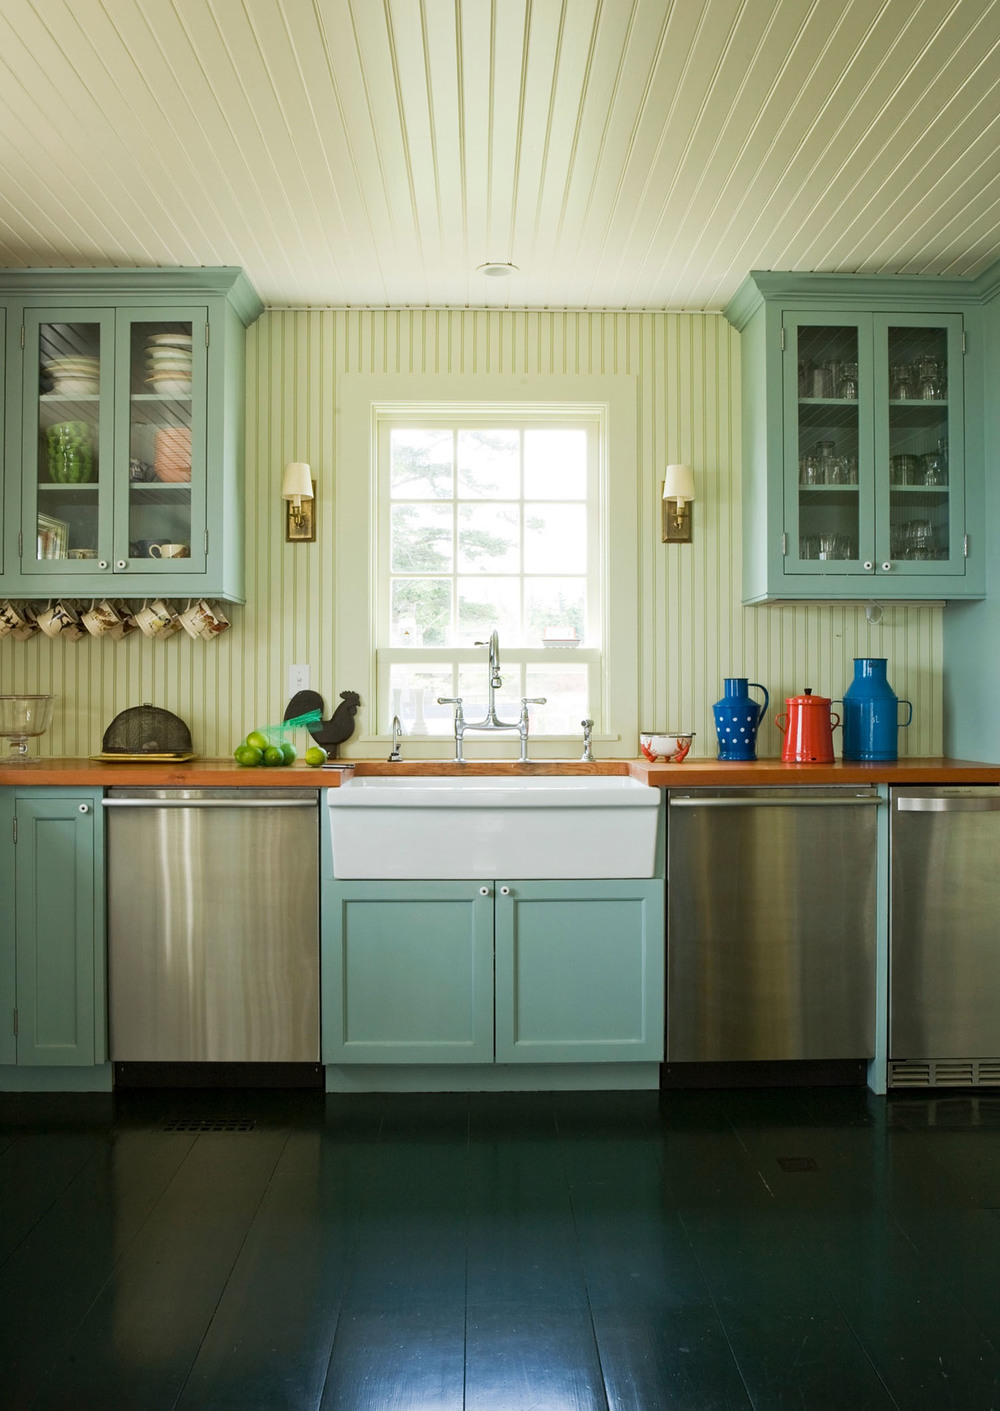 Vinalhaven Kitchen.jpg